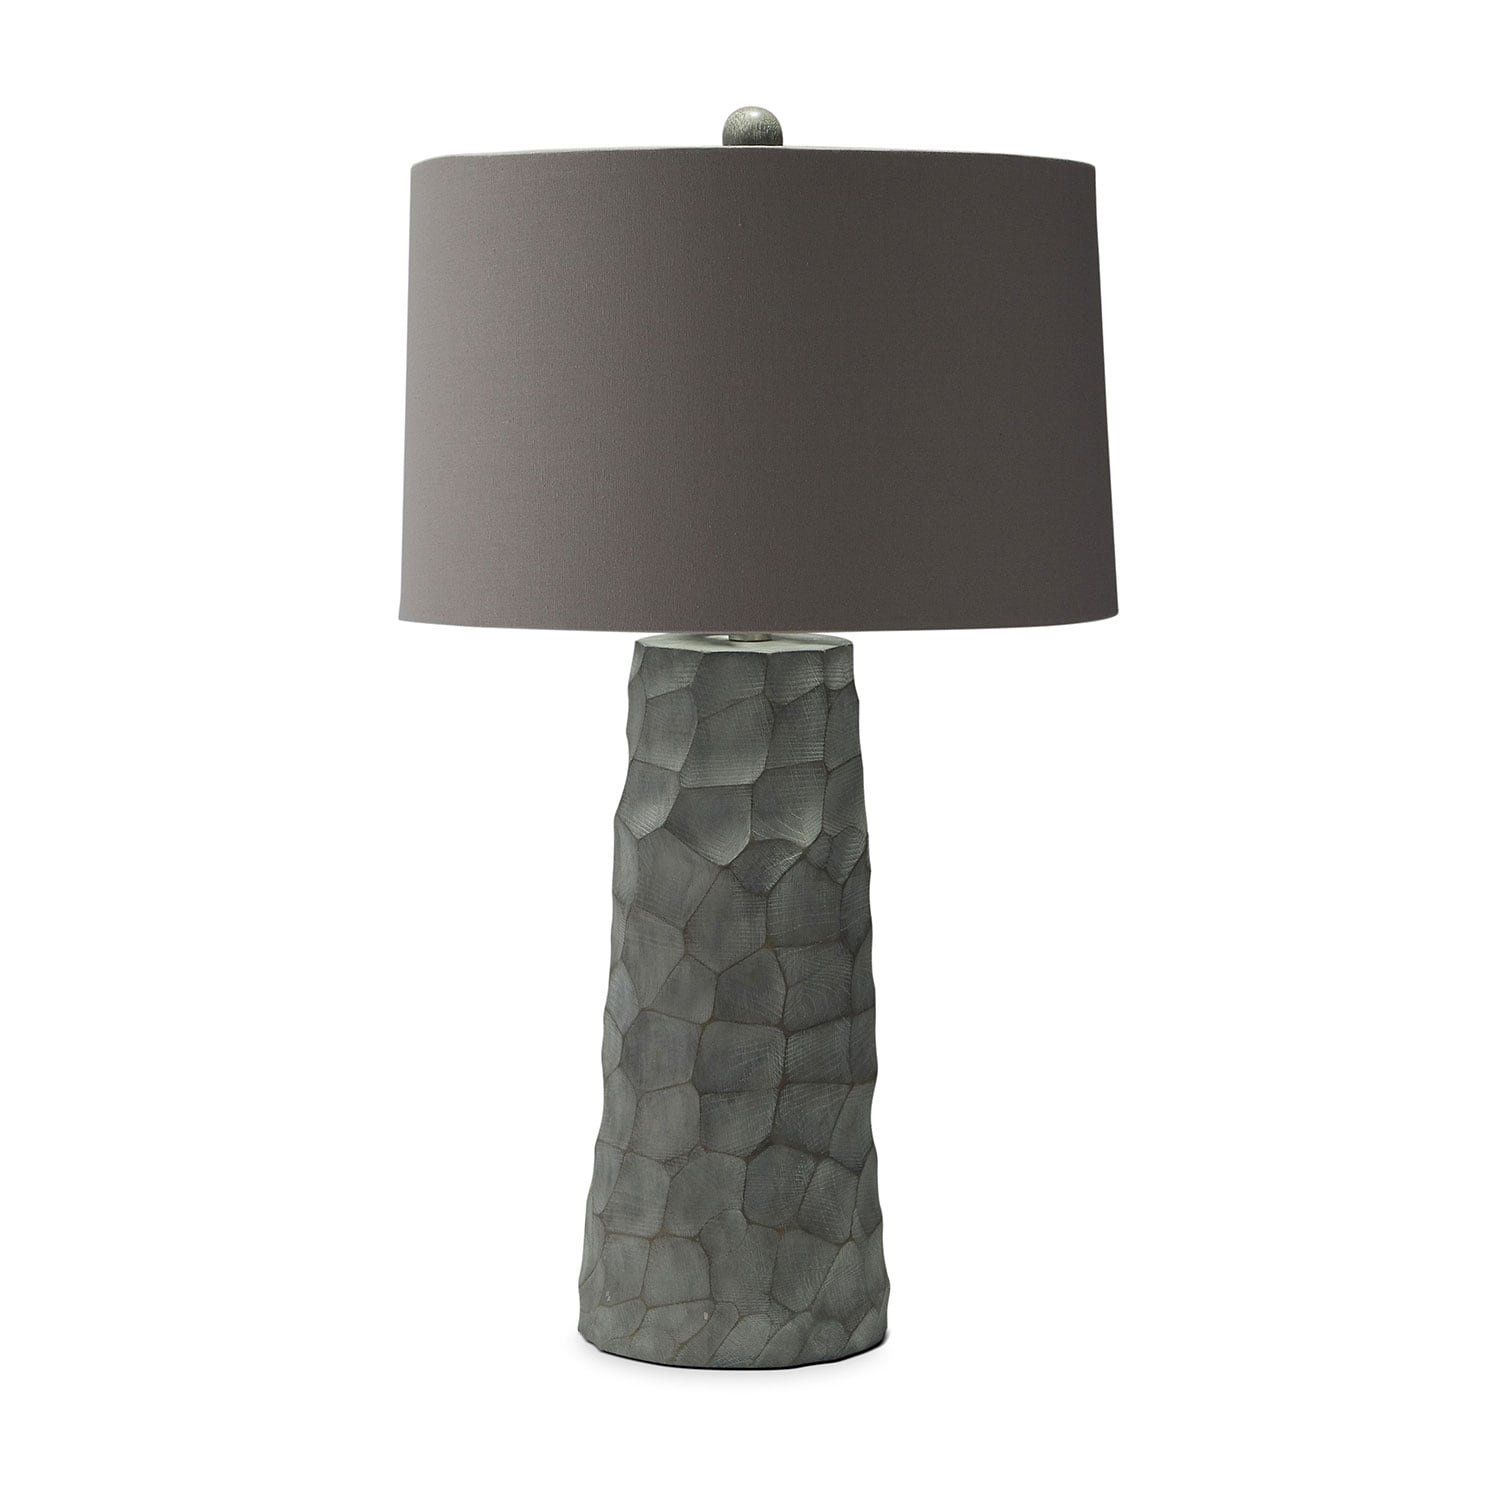 Home Accessories - Thumbprint Table Lamp